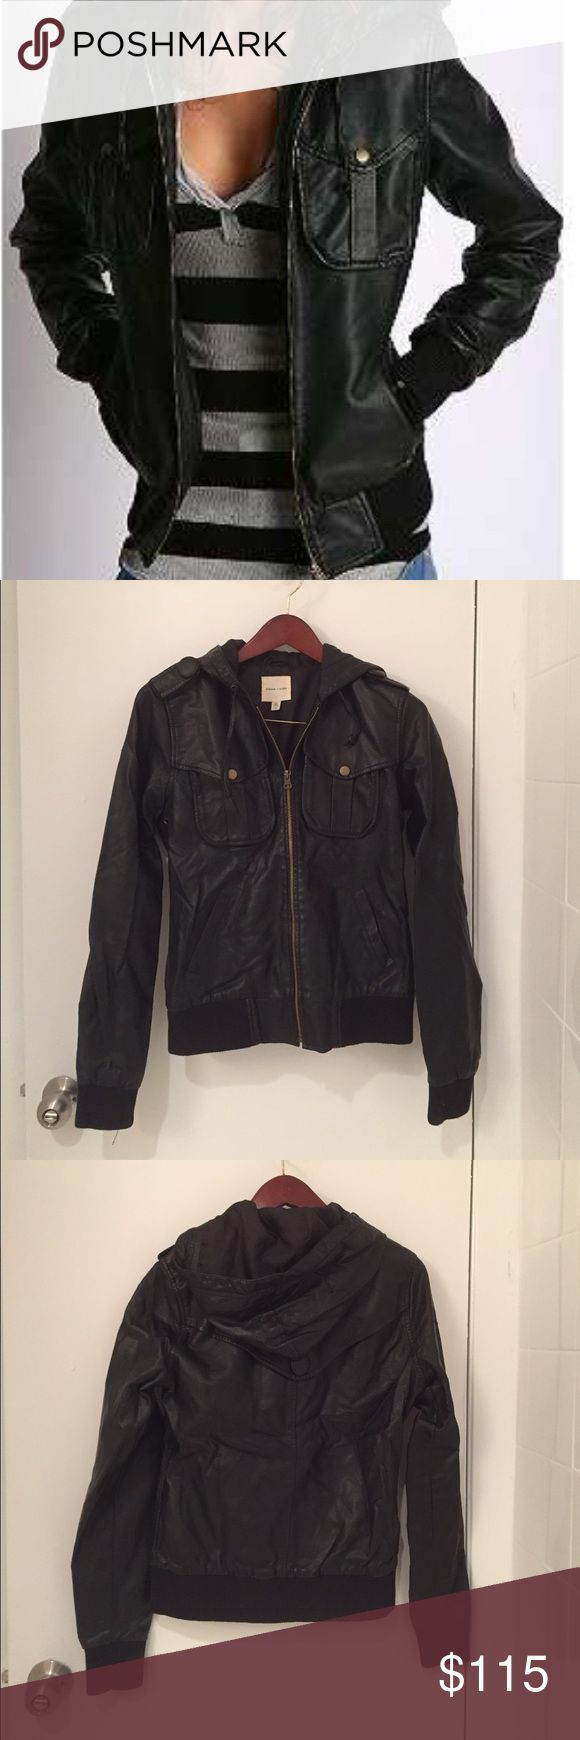 Urban Outfitters Faux Leather Hooded Bomber Jacket Showstopper Urban Outfitters (Silence + Noise) Faux Leather Hooded Bomber Jacket. Never worn. Urban Outfitters Jackets & Coats